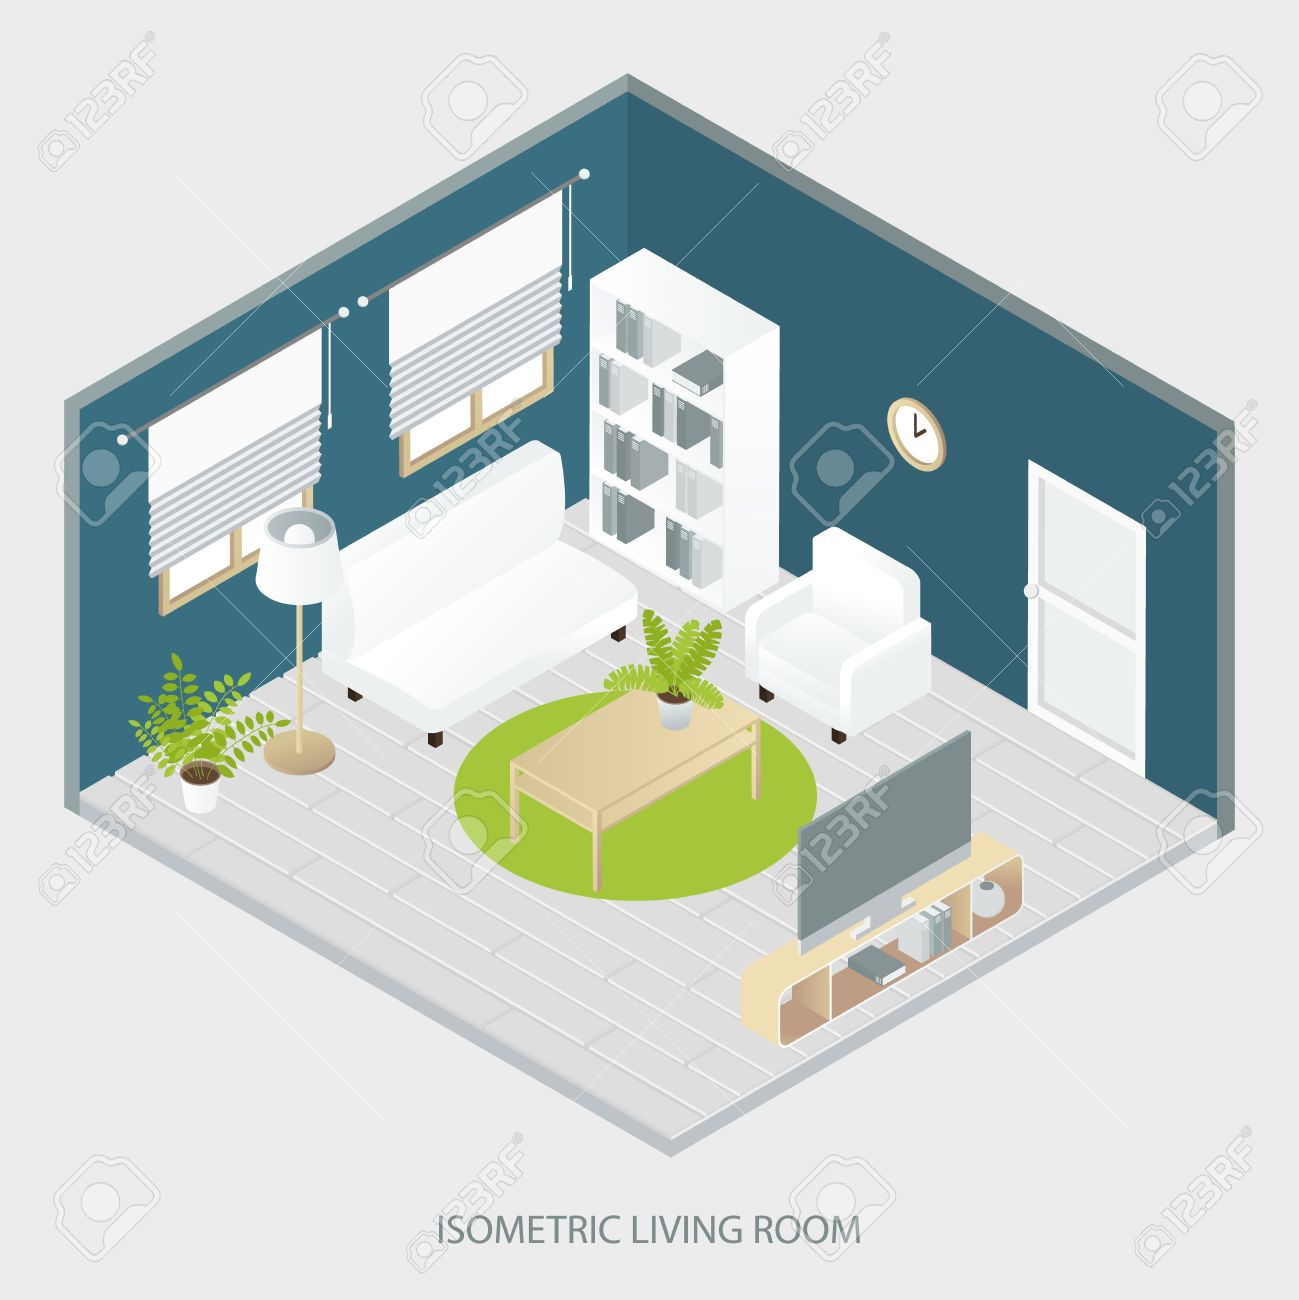 Isometric Living Room With White And Beige Furniture Round Carpet ...